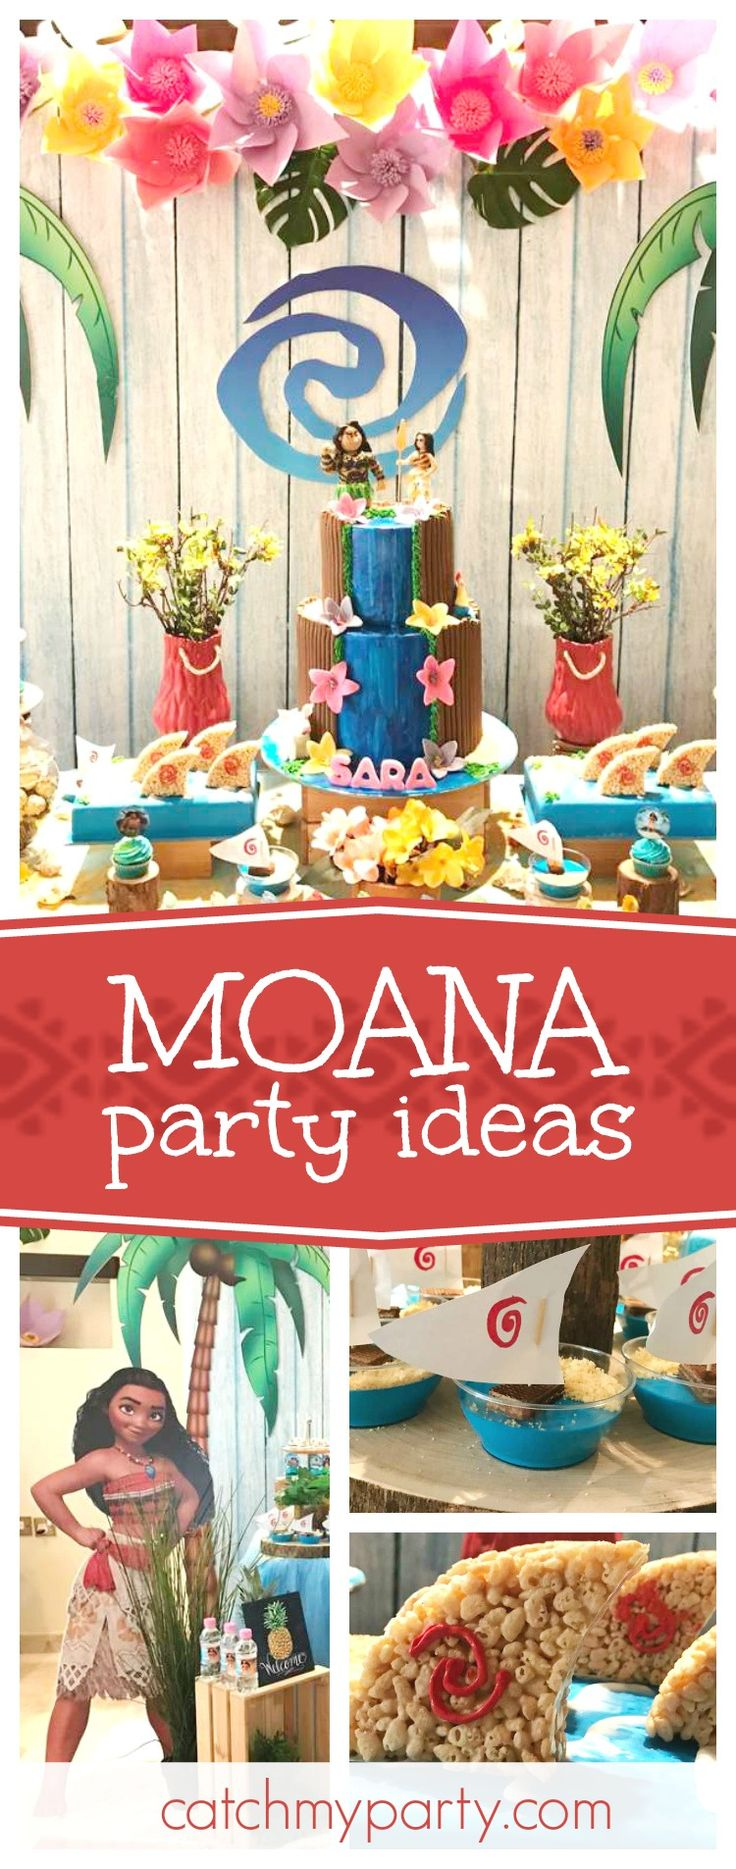 152 best moana birthday party ideas images on pinterest - Th party theme ideas ...